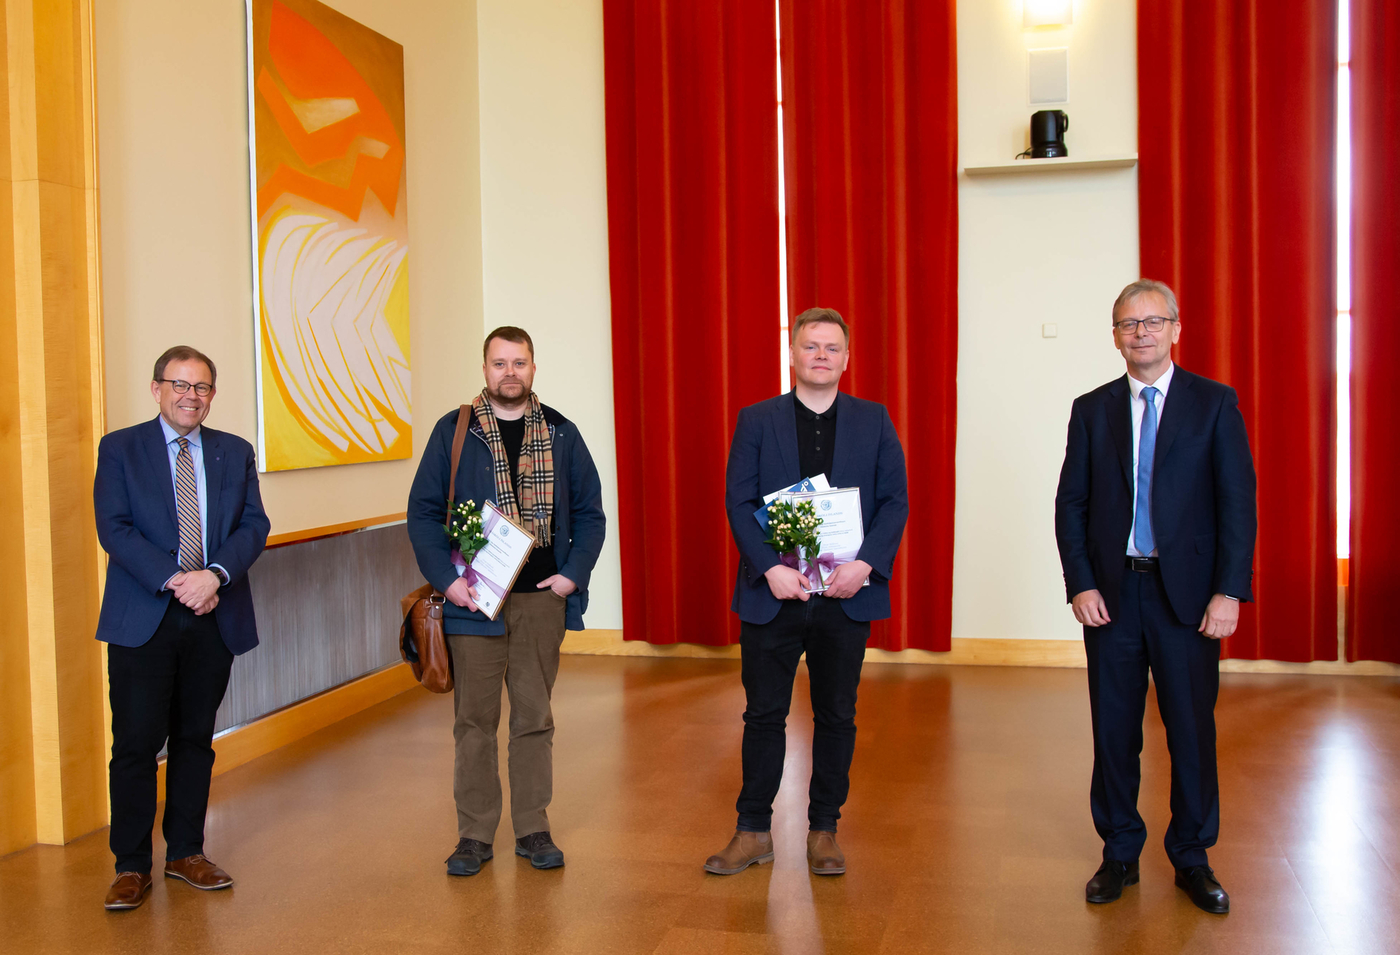 """The award in the Health category, a total of 1.5 million Ikr was presented to the project """"Identification and isolation of active substances in blood"""". The team behind the project is Óttar Rolfsson, Professor at the Faculty of Medicine, Freyr Jóhannsson, biochemist, and Ólafur Eysteinn Sigurjónsson, Clinical Professor and biologist at Landsspítali, University Hospital. Óttar and Ólafur are here with the University Rector and the Head of the Selection Committee. IMAGE/Kristinn Ingvarsson."""